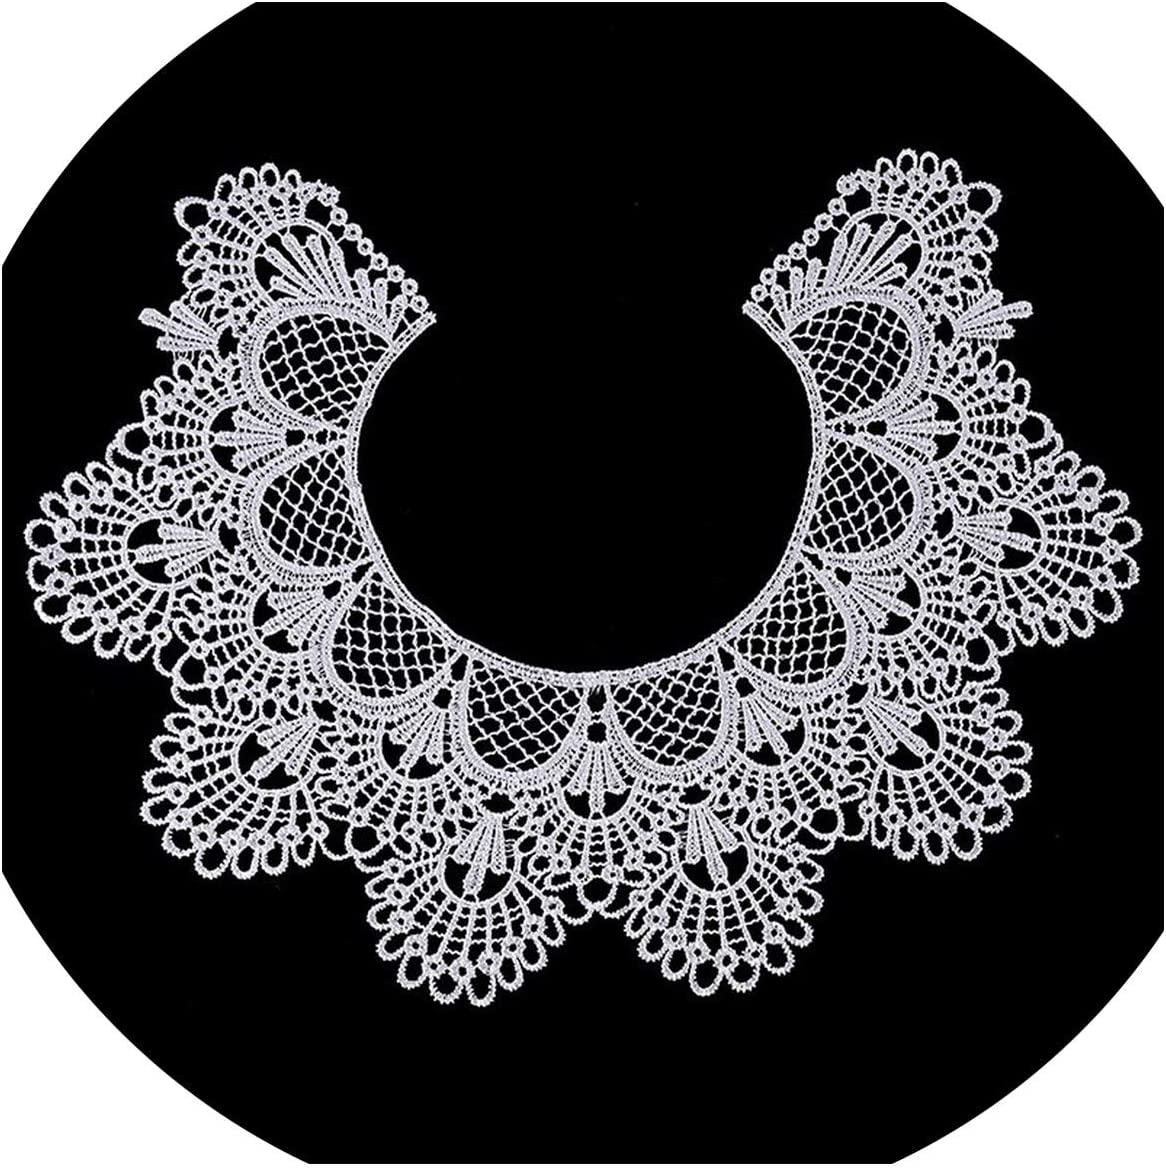 Runfon Cut-Out Lace Collar Lace Border Lace Decoration Dress Sewing DIY Flower Lace Decoration Embroidered Black Guipure Wedding Lace Patches/ /100/% Brand New